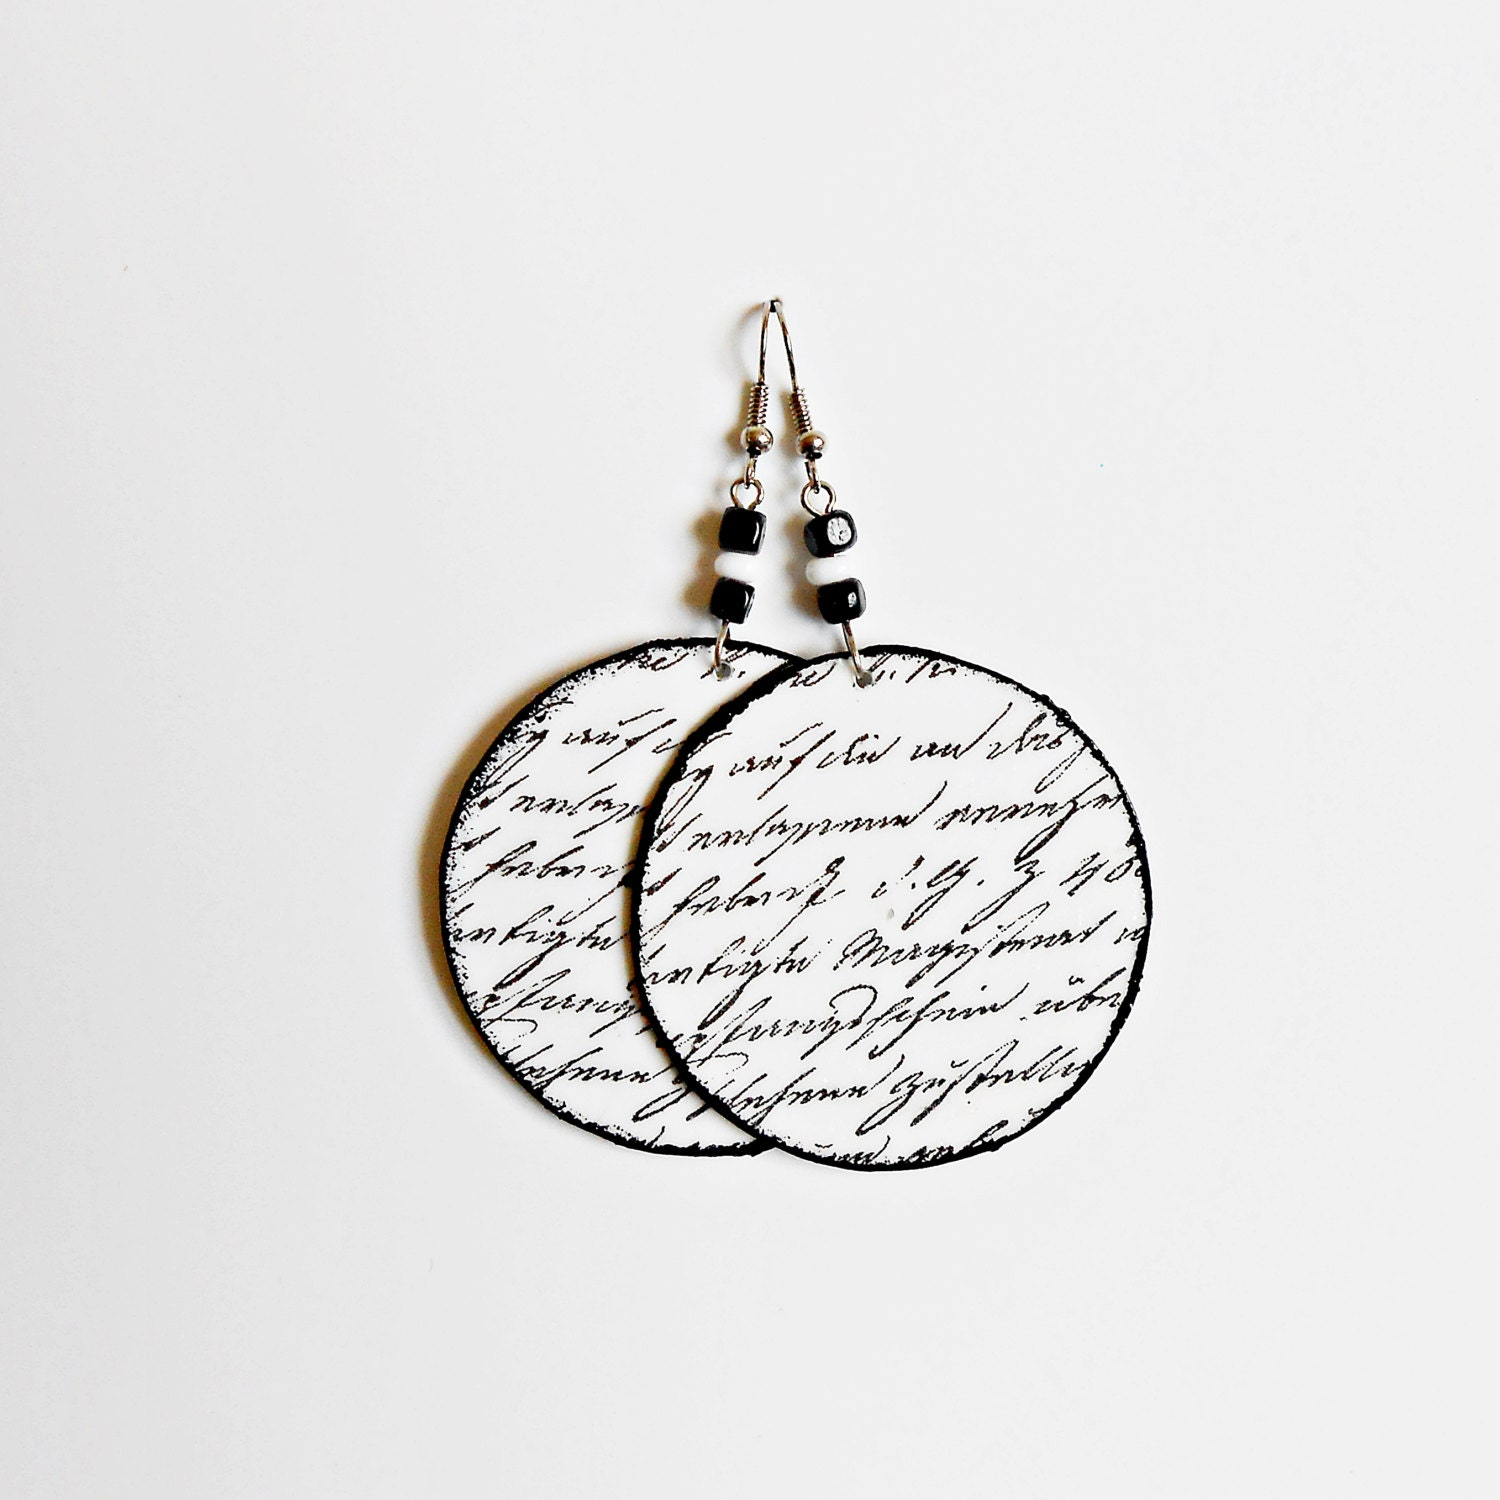 Handmade Decoupage Circle Earrings, Gift for Her, Modern Light Earrings, Jewelry for Woman, Black and White Inscription Earrings